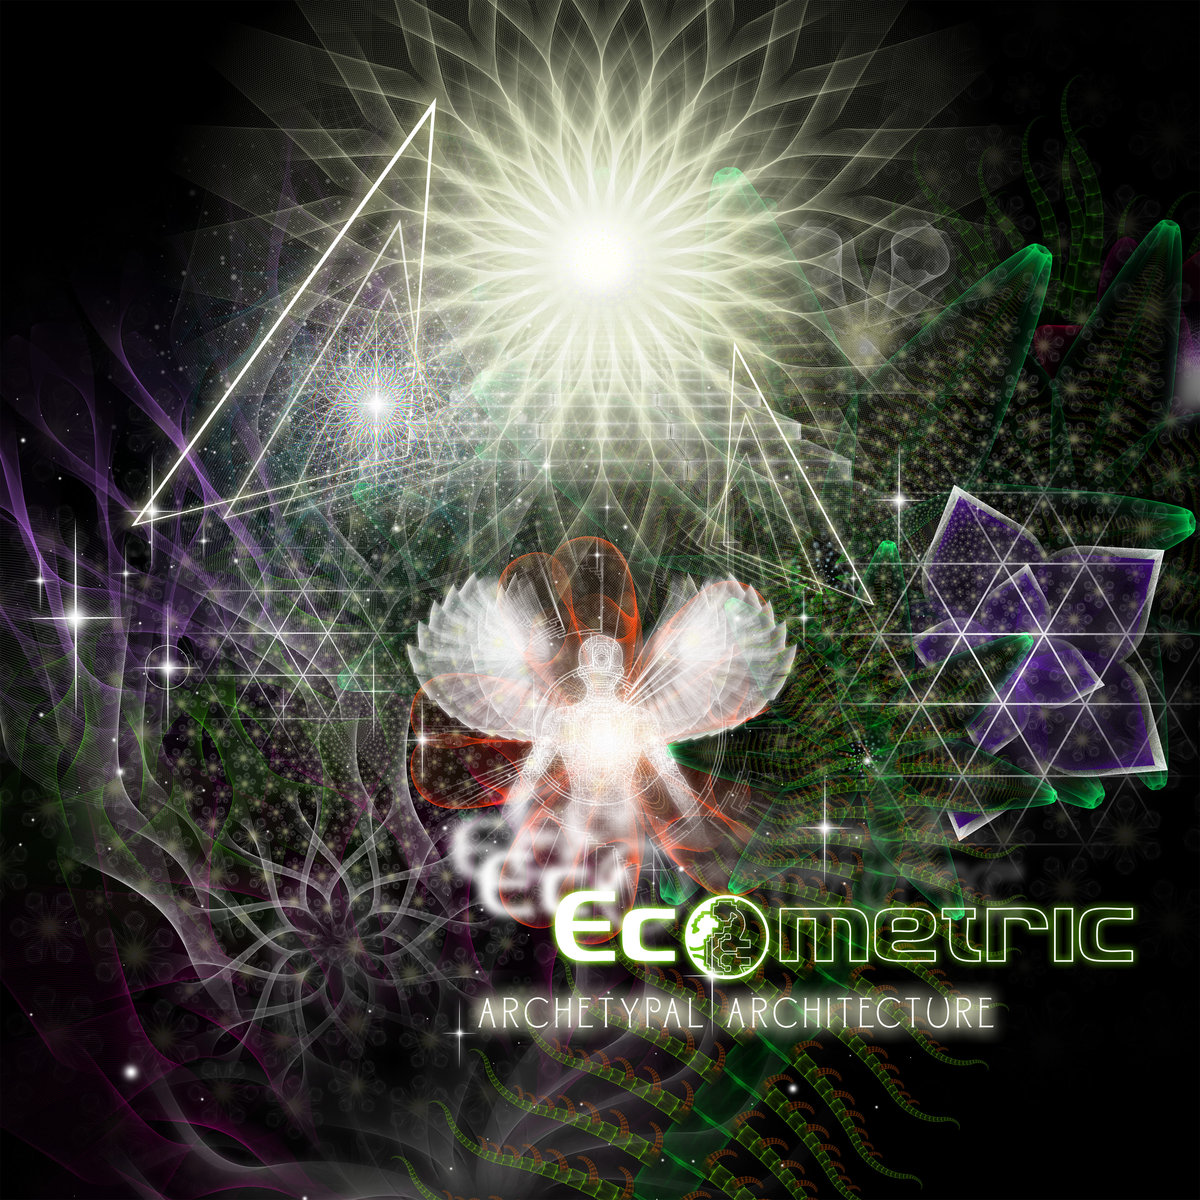 Ecometric - Clearing @ 'Archetypal Architecture' album (424hz, electronic)